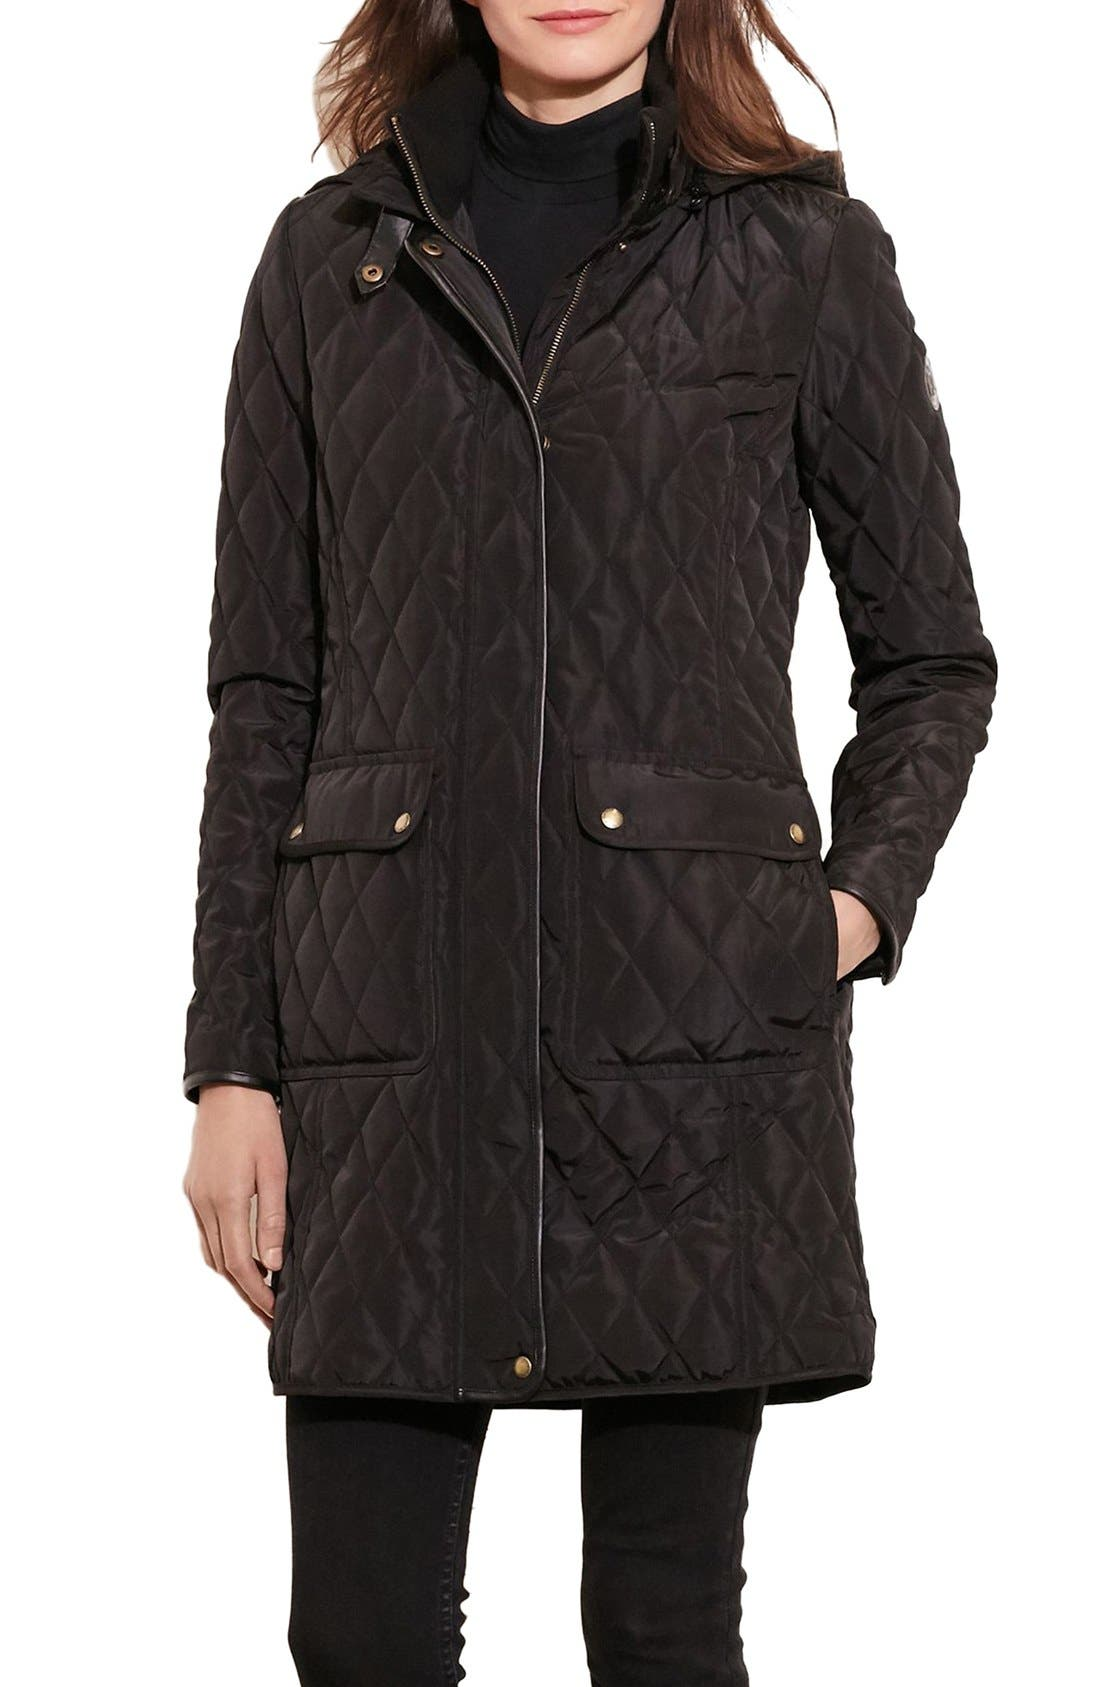 Main Image - Lauren Ralph Lauren Diamond Quilted Coat with Faux Leather Trim (Regular & Petite)